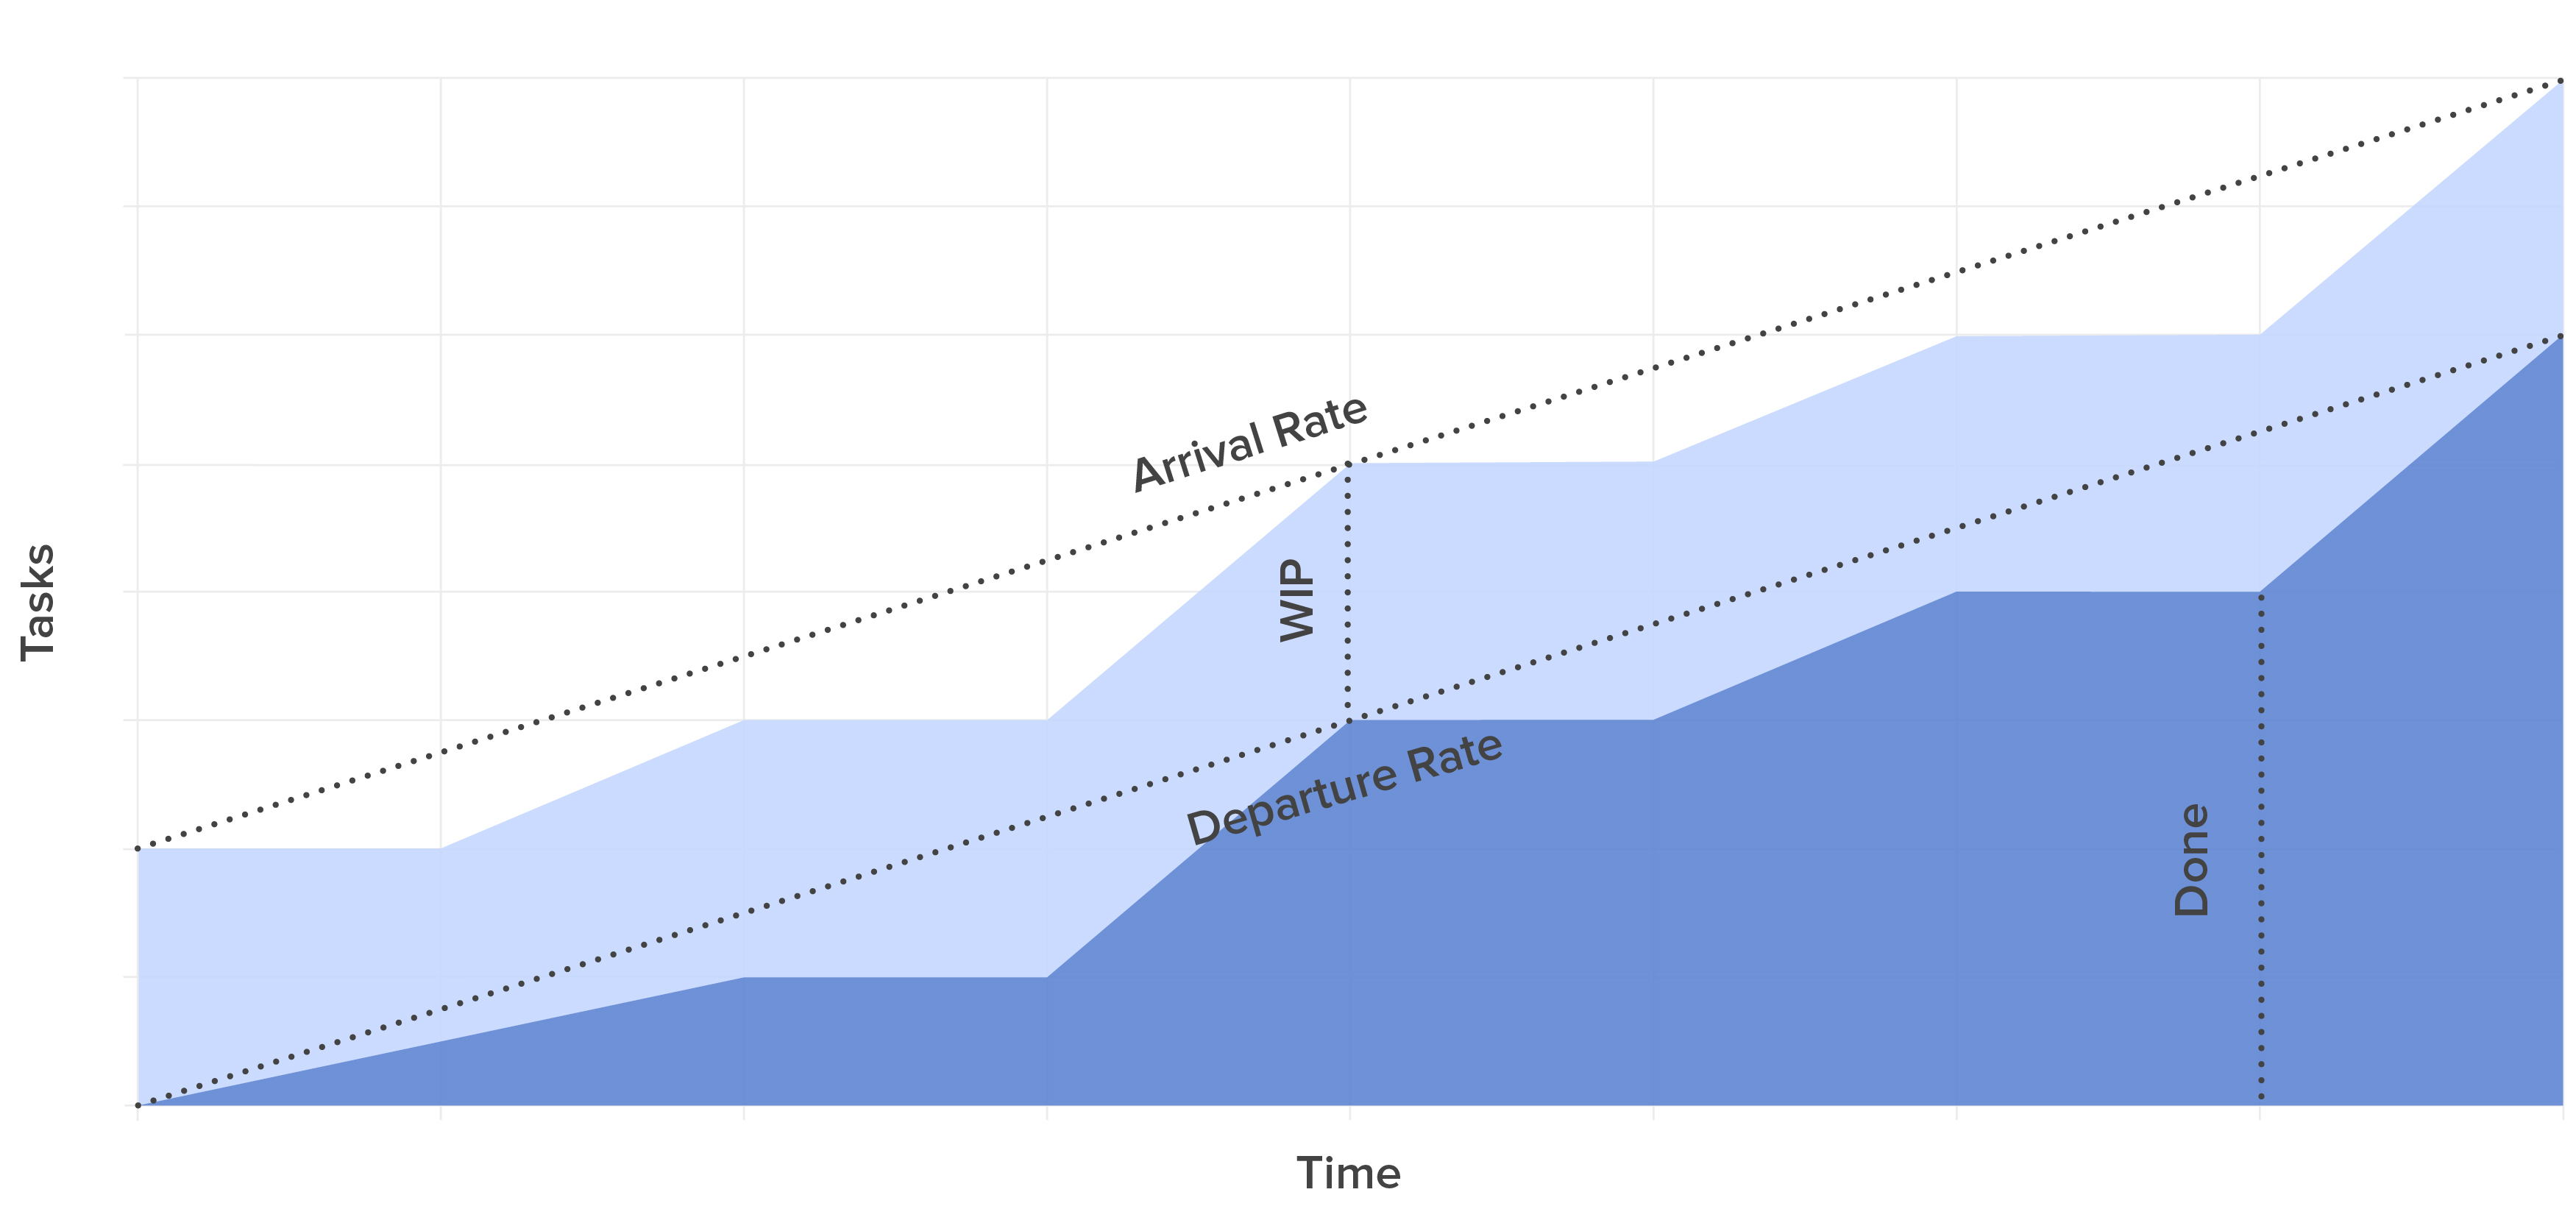 Cumulative Flow Diagram - arrivals and departures